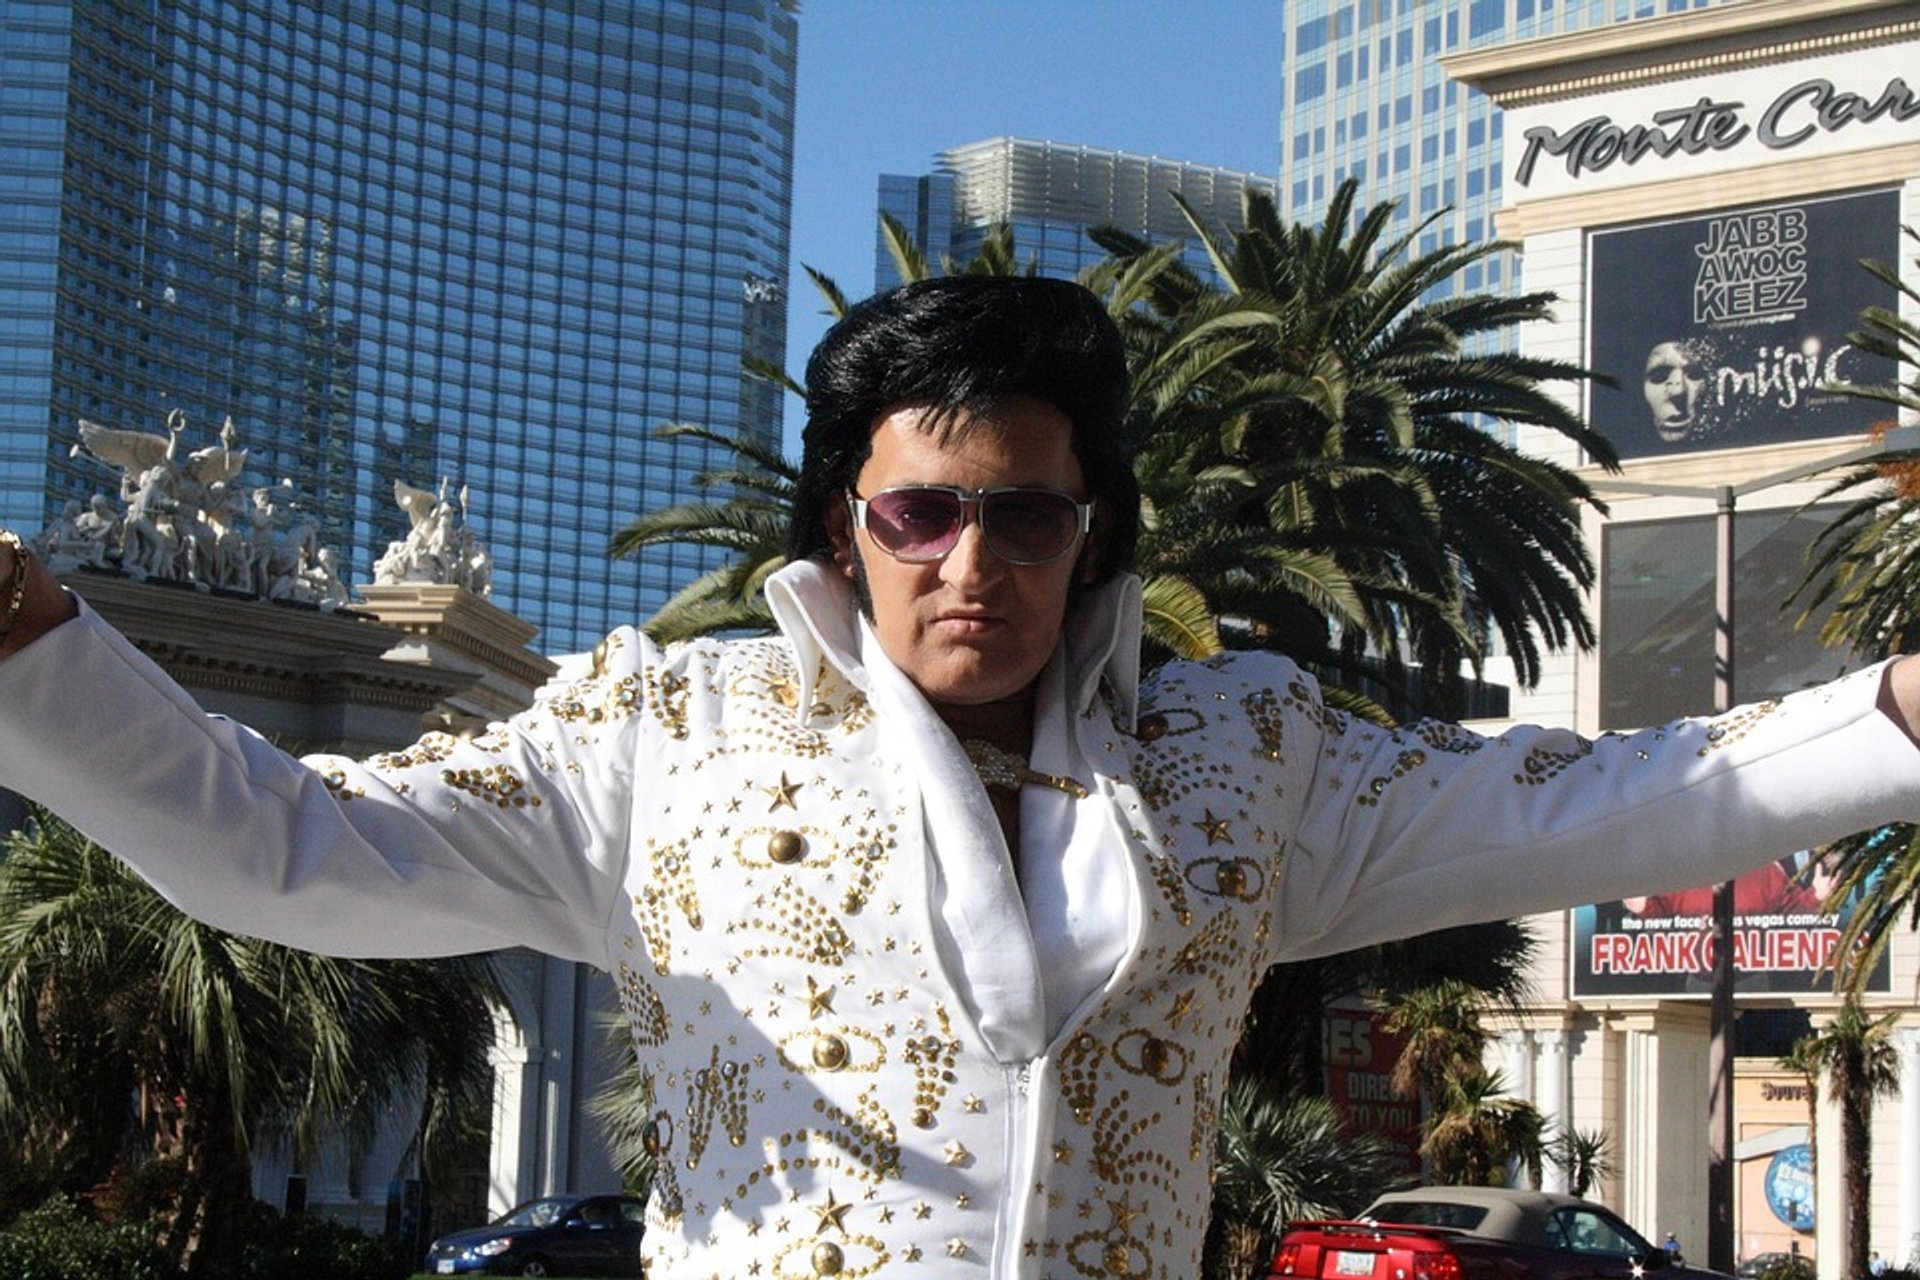 Elvis Festival in Las Vegas 2020 - Best Time